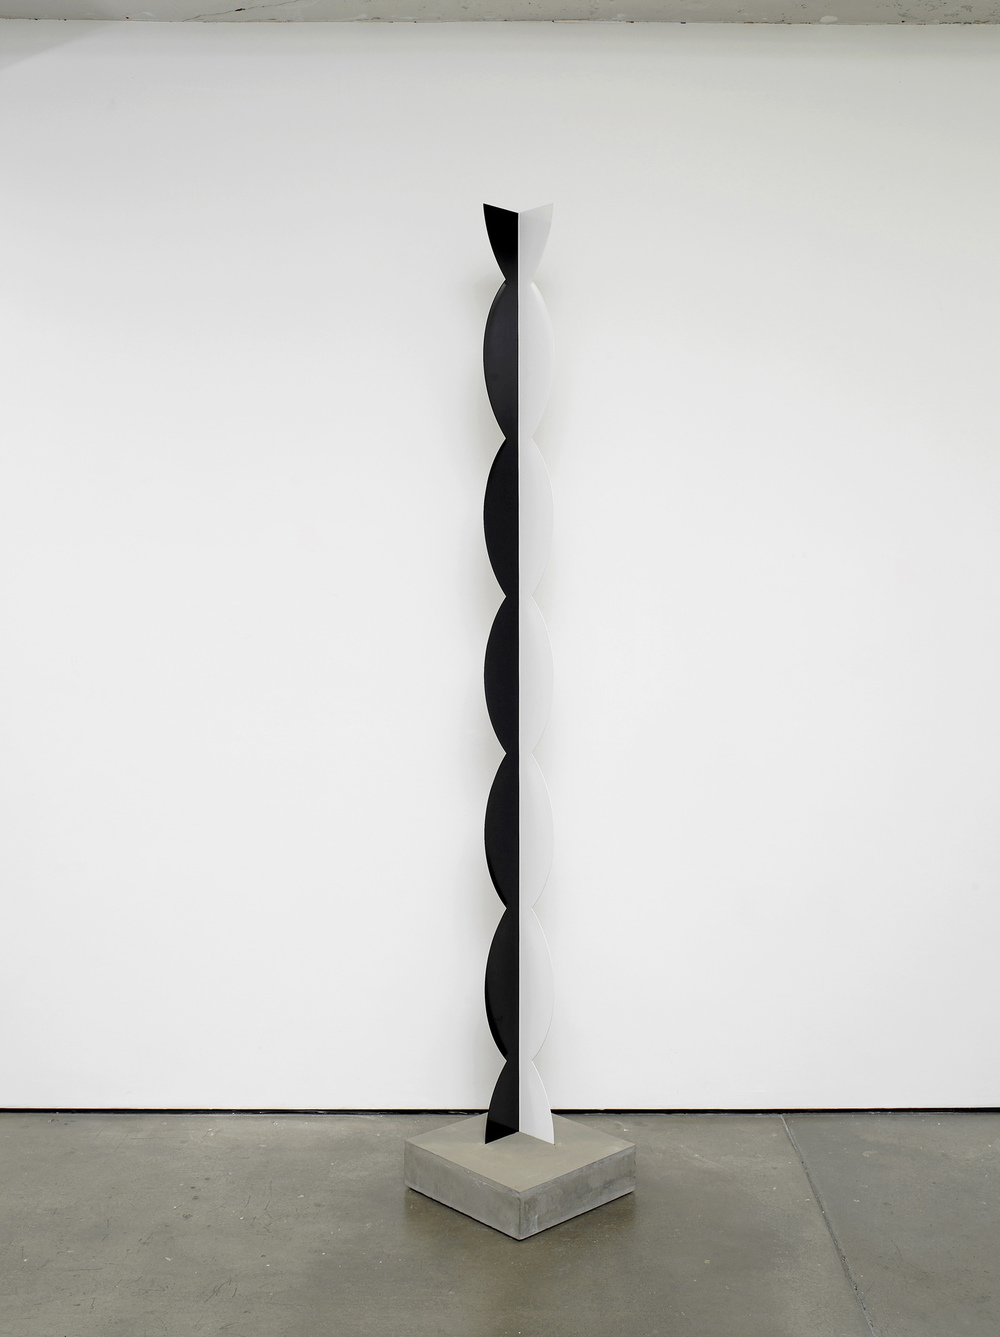 Kusine 2012 Painted steel, concrete 258 x 12 x 12 cm / 101.5 x 4.7 x 4.7 in